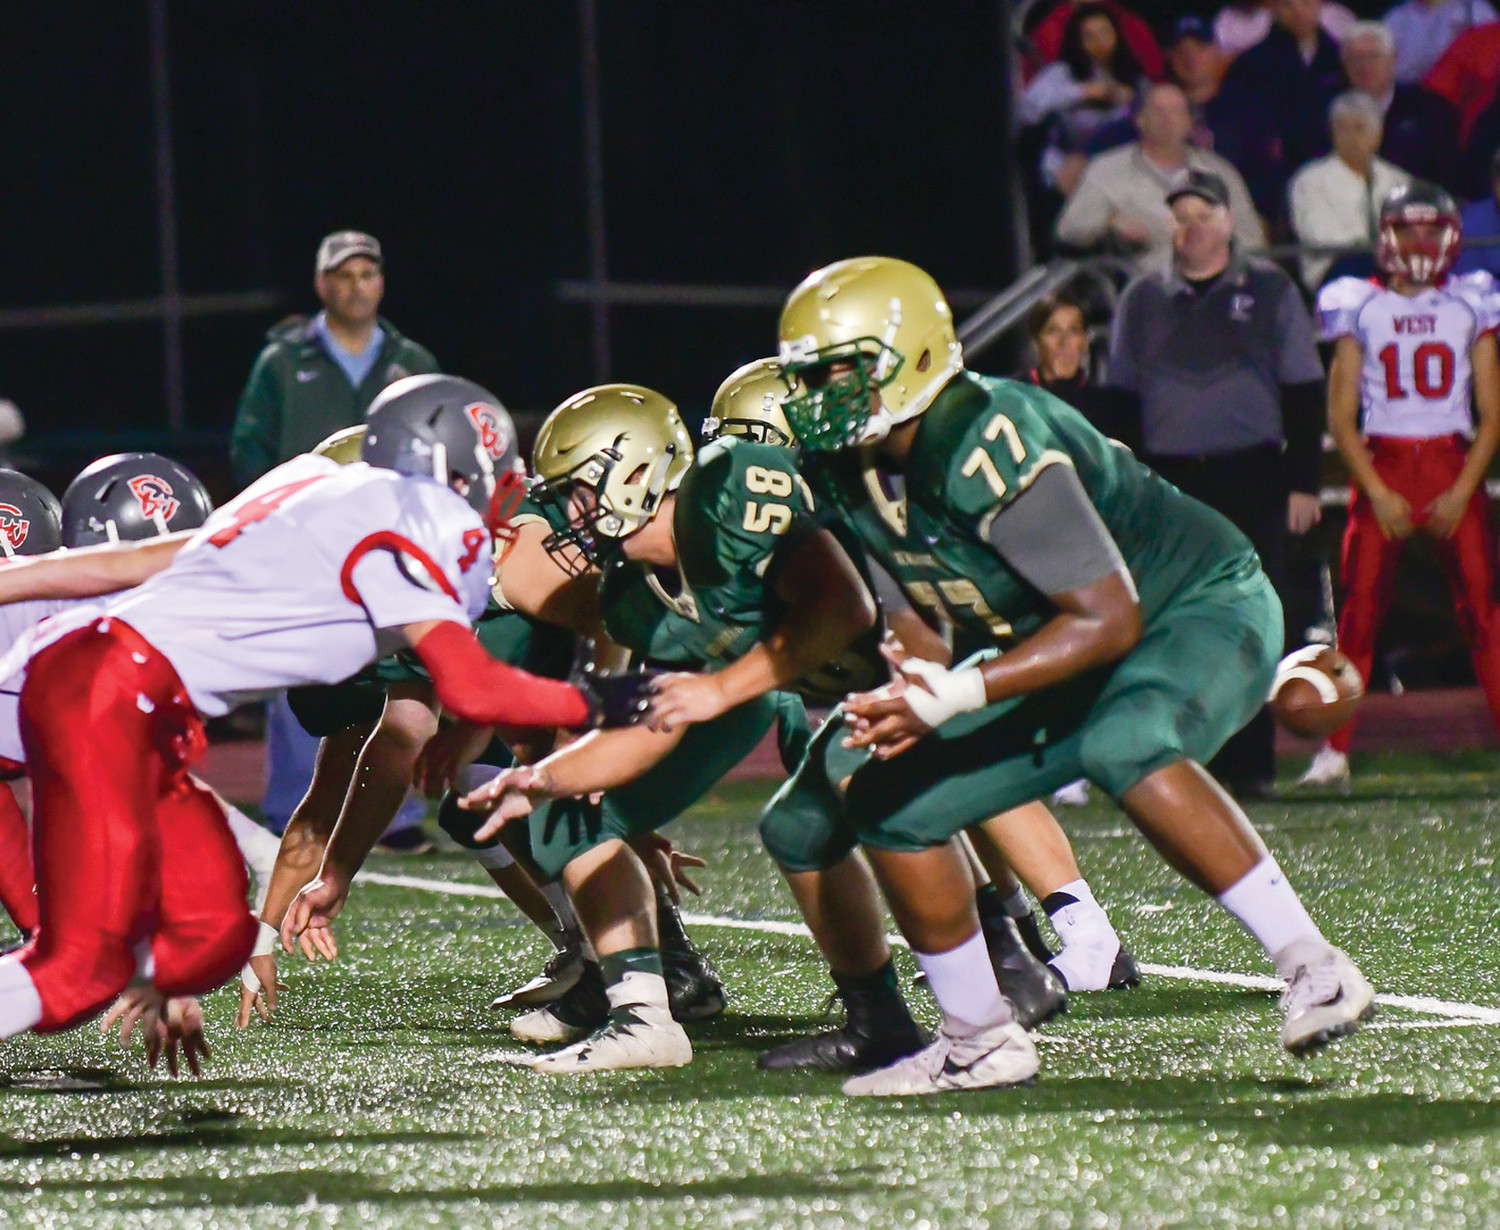 BLIND SIDE: Bishop Hendricken's Xavier Truss blocks during the 2017 season.